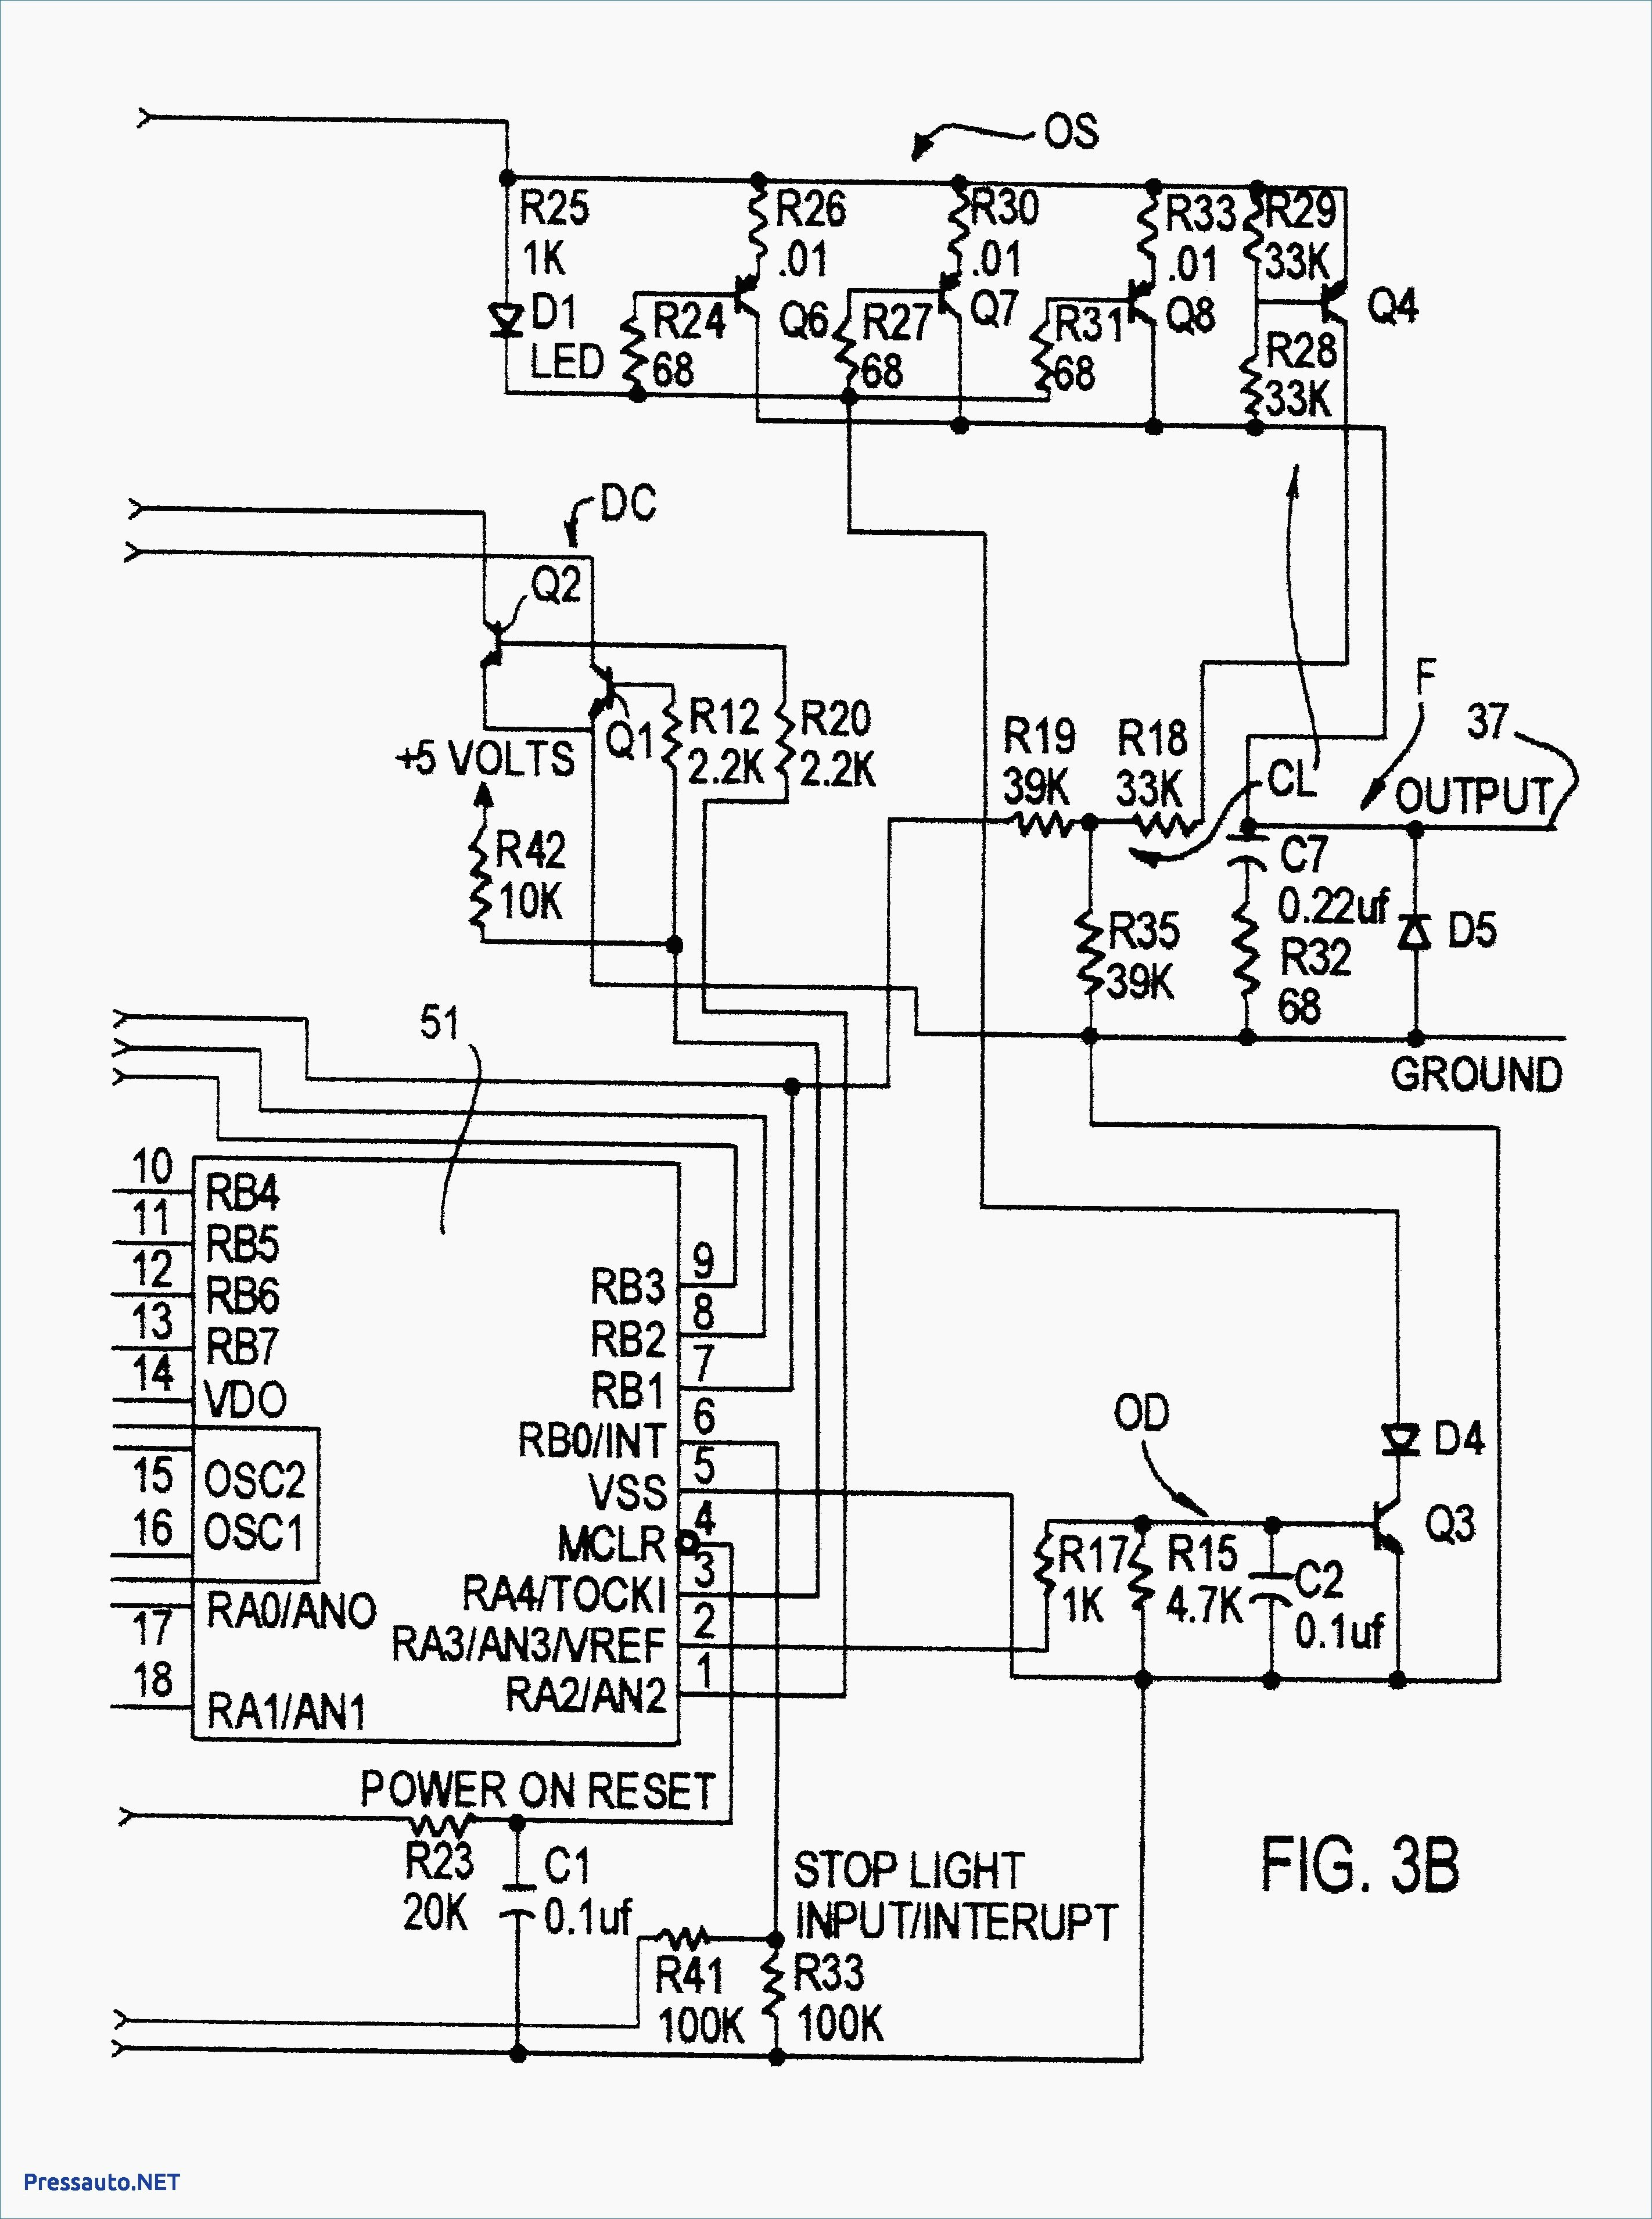 Single Phase House Wiring Diagram Awesome | Wiring Diagram Image